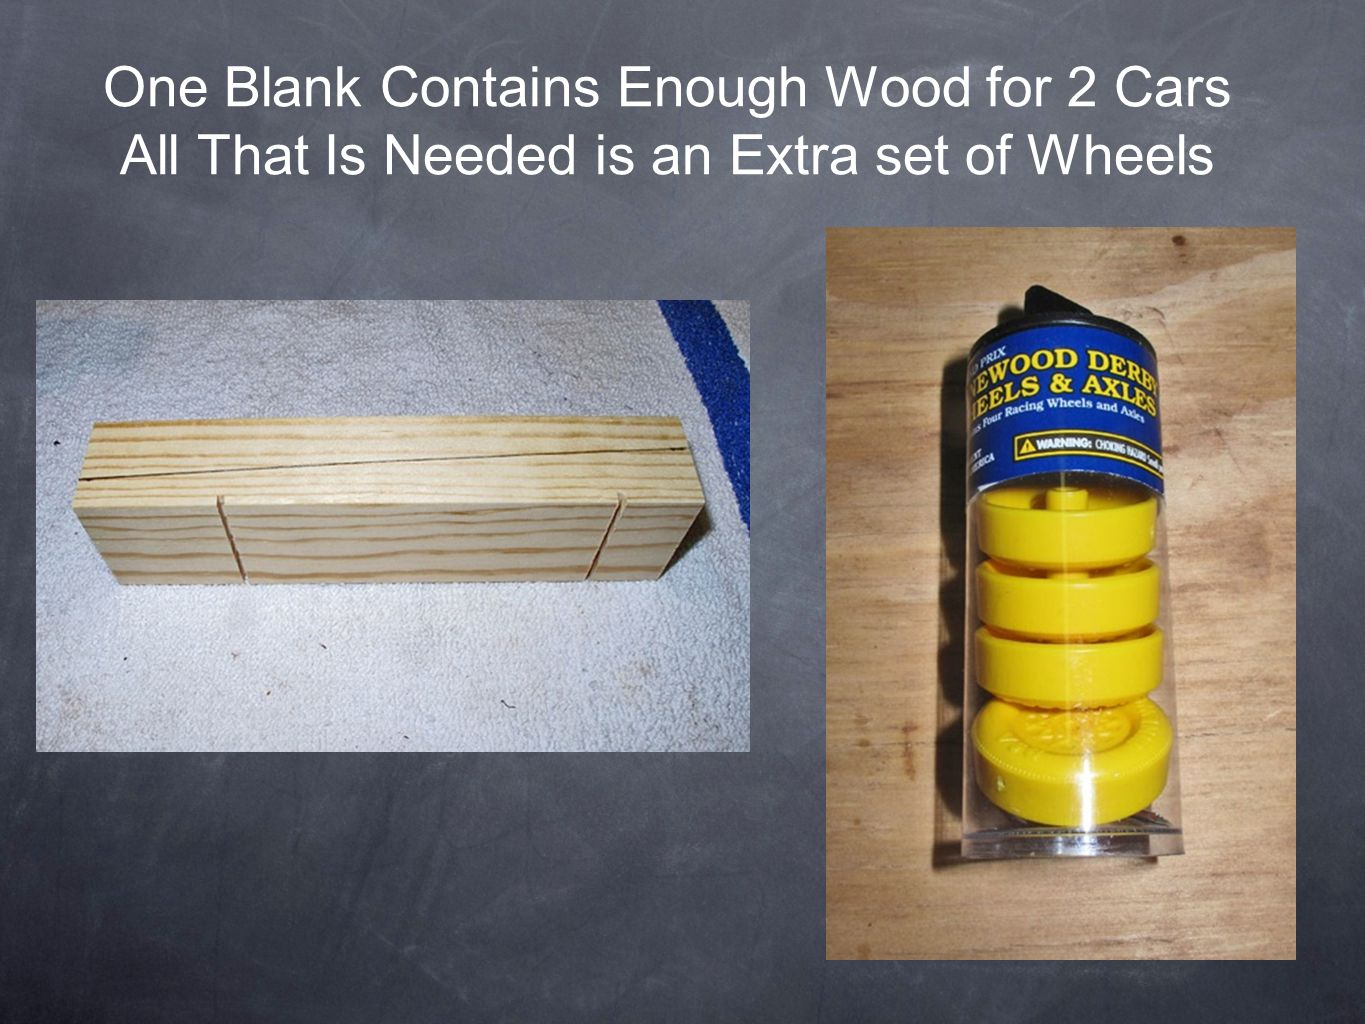 One Blank Contains Enough Wood for 2 Cars All That Is Needed is an Extra set of Wheels